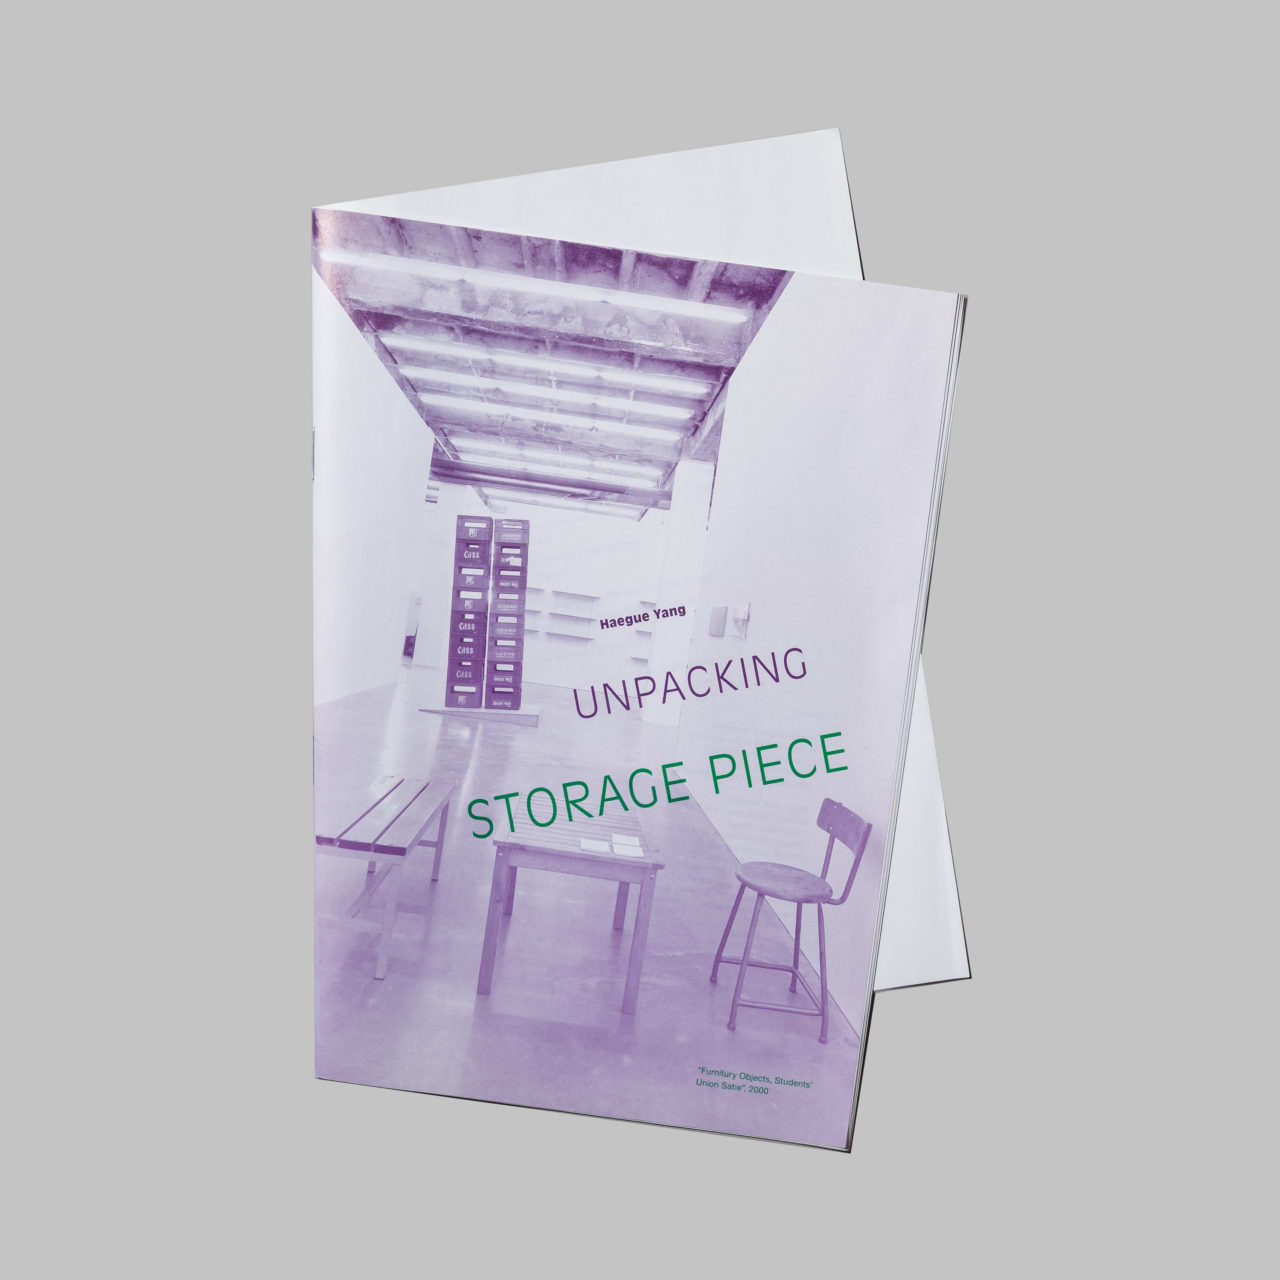 Haegue Yang: Unpacking Storage piece, Wiens Verlag, 2007